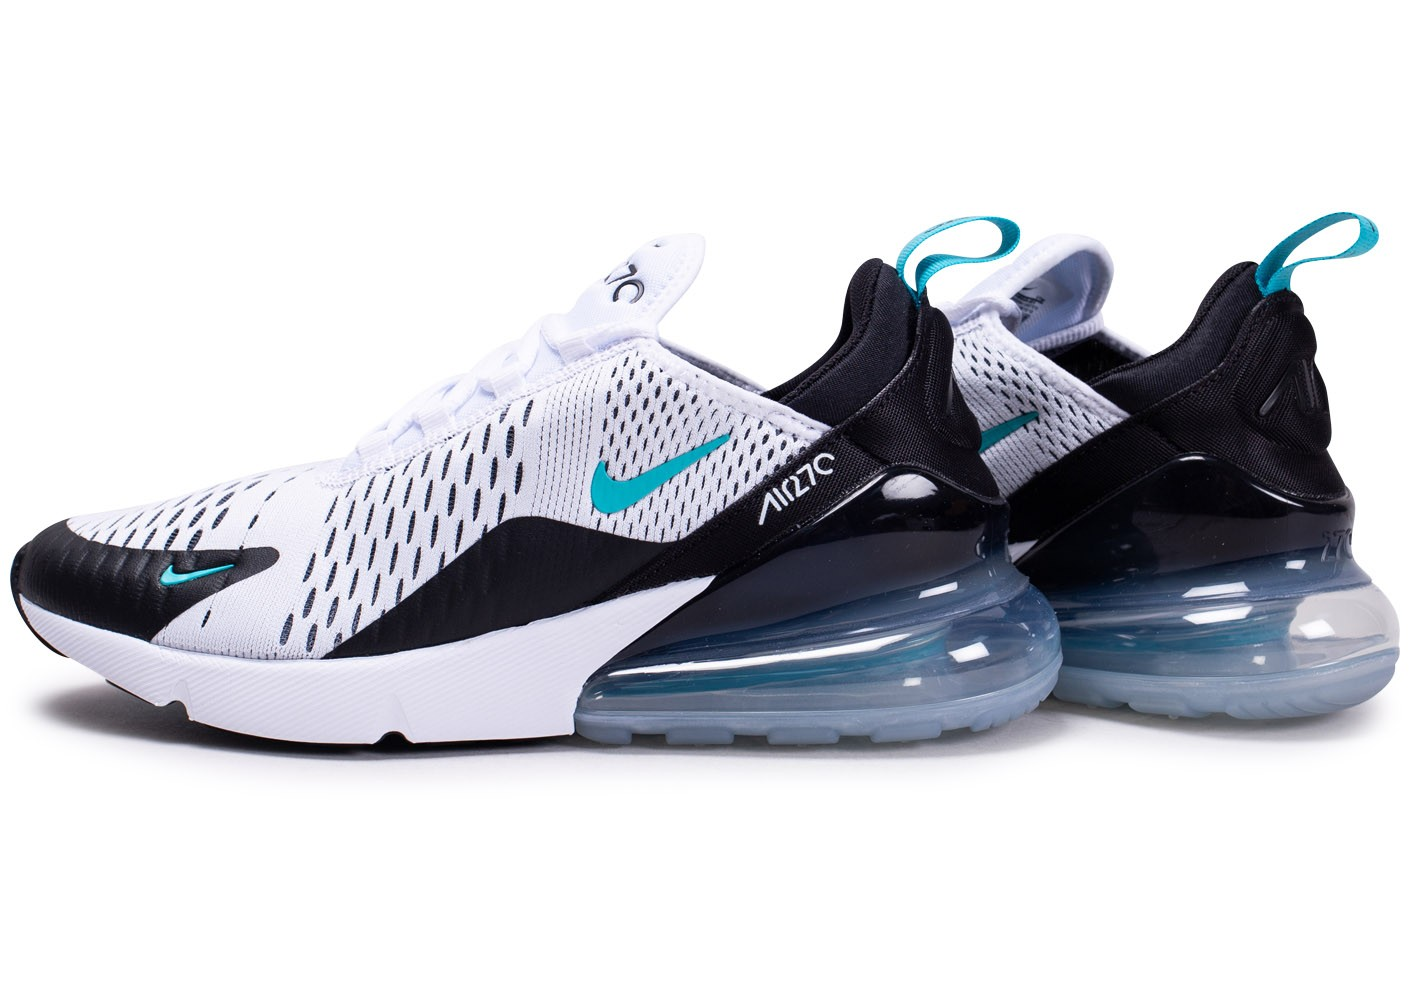 Nike Air Max 270 Dusty cactus Chaussures Baskets homme